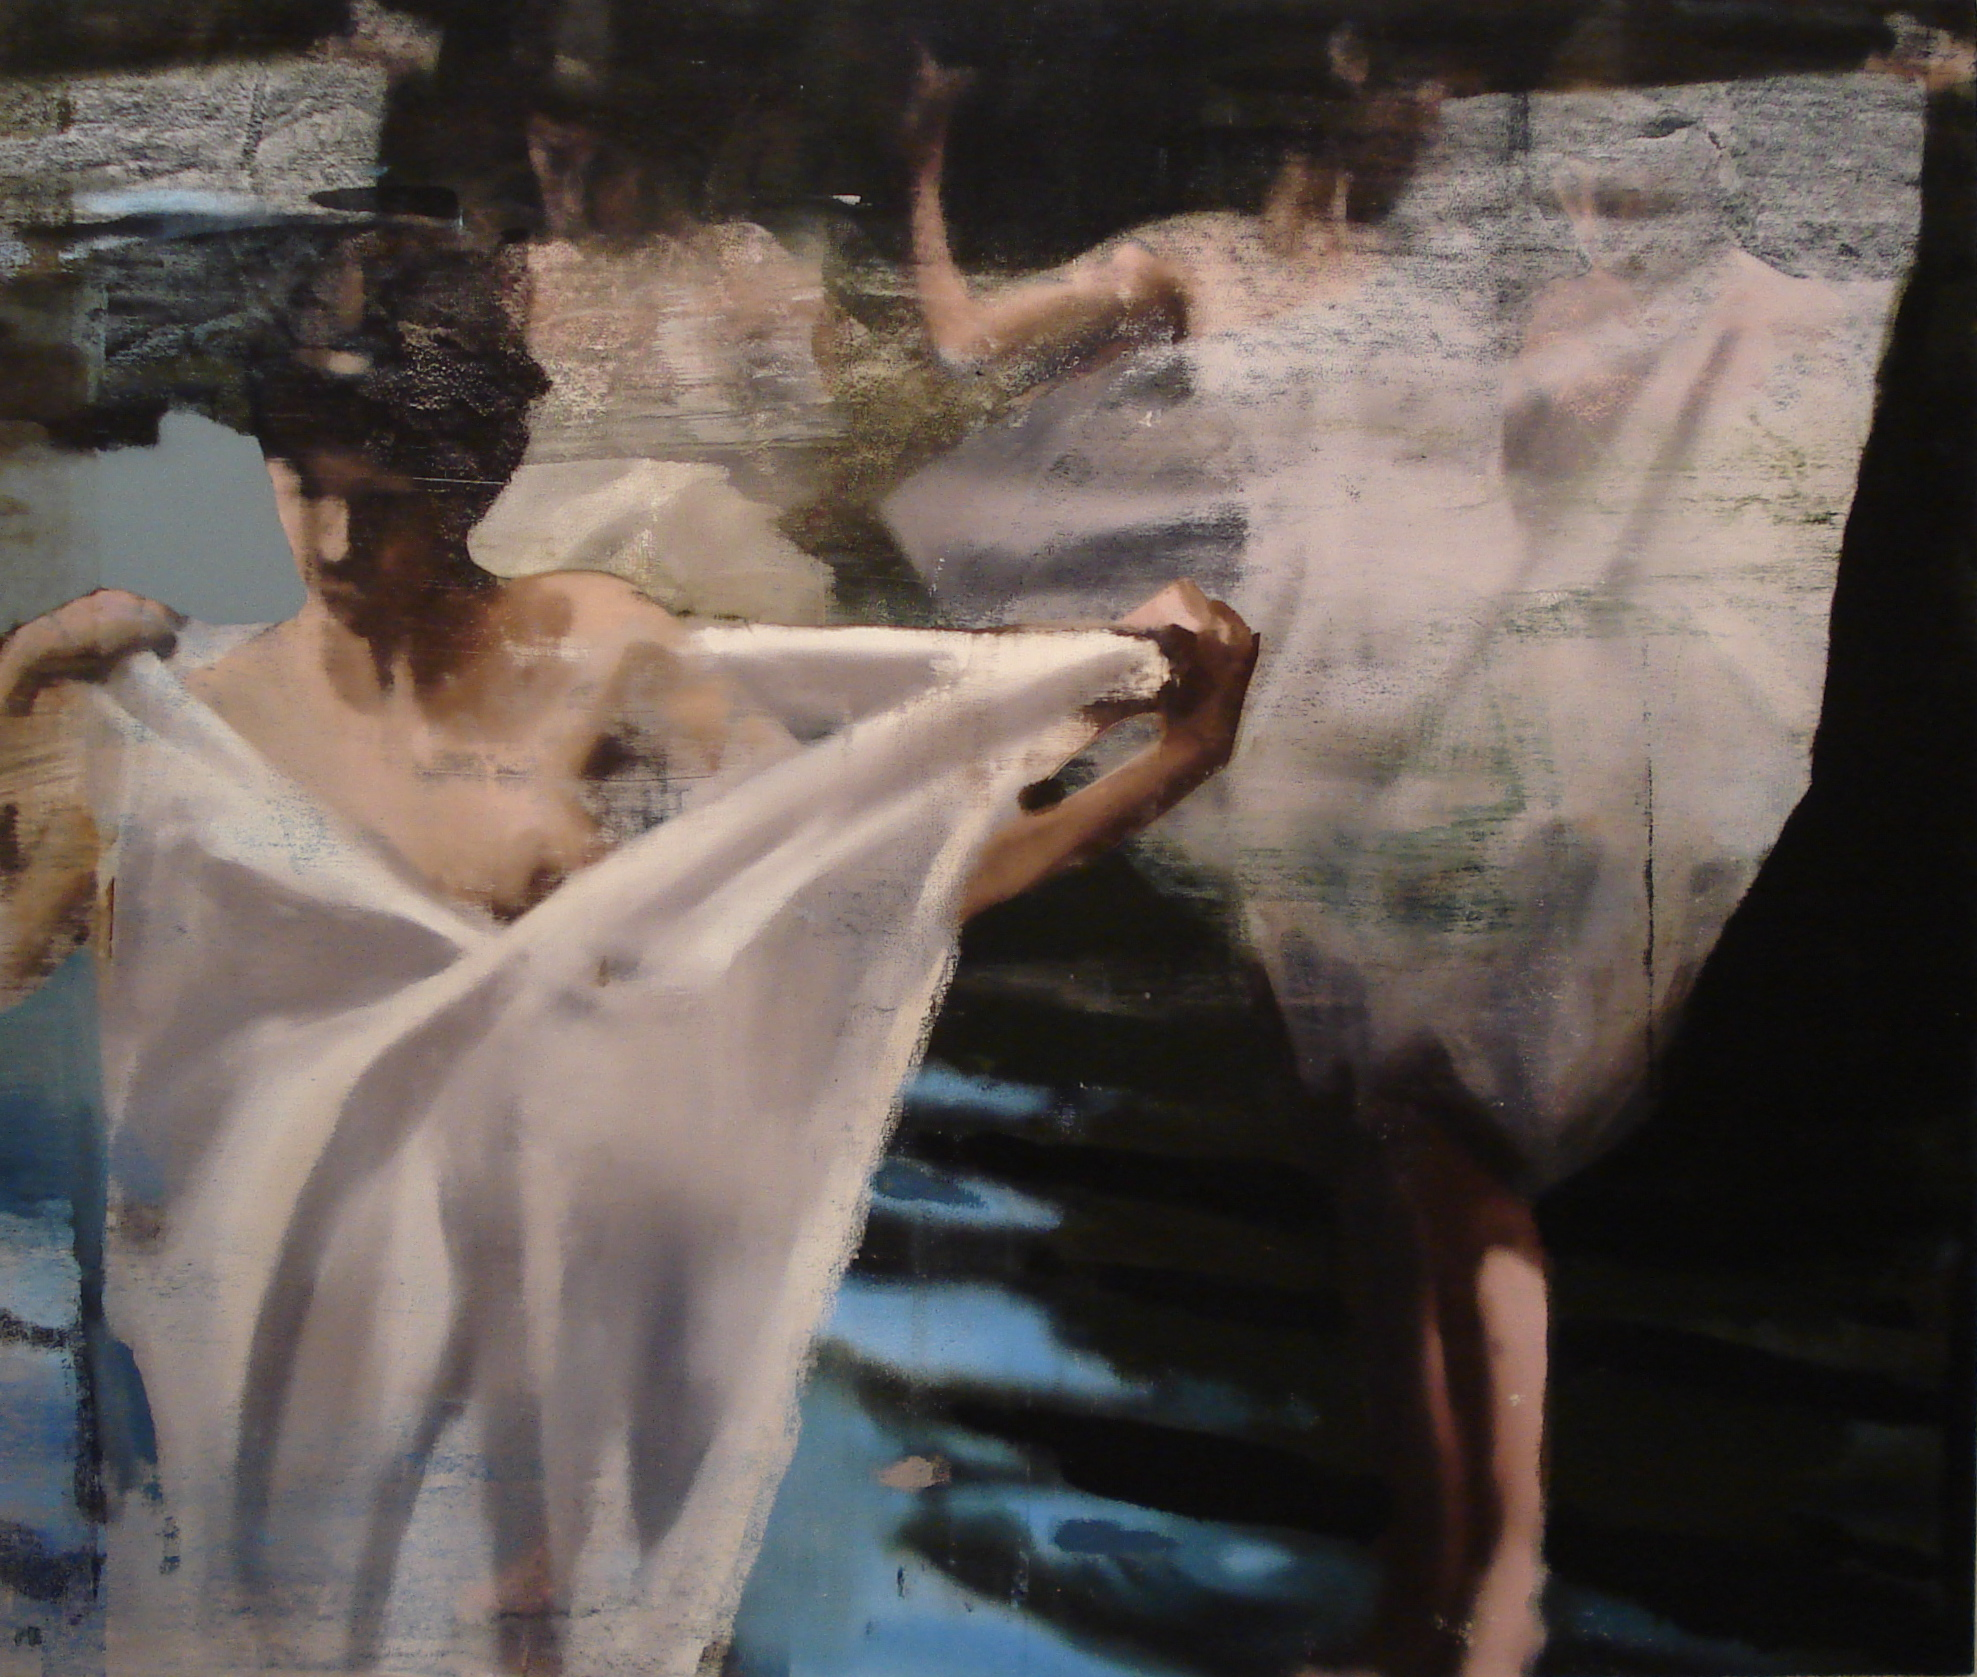 "Vulnerability, Oil on Linen on Panel, 2010, 68"" x 80"""